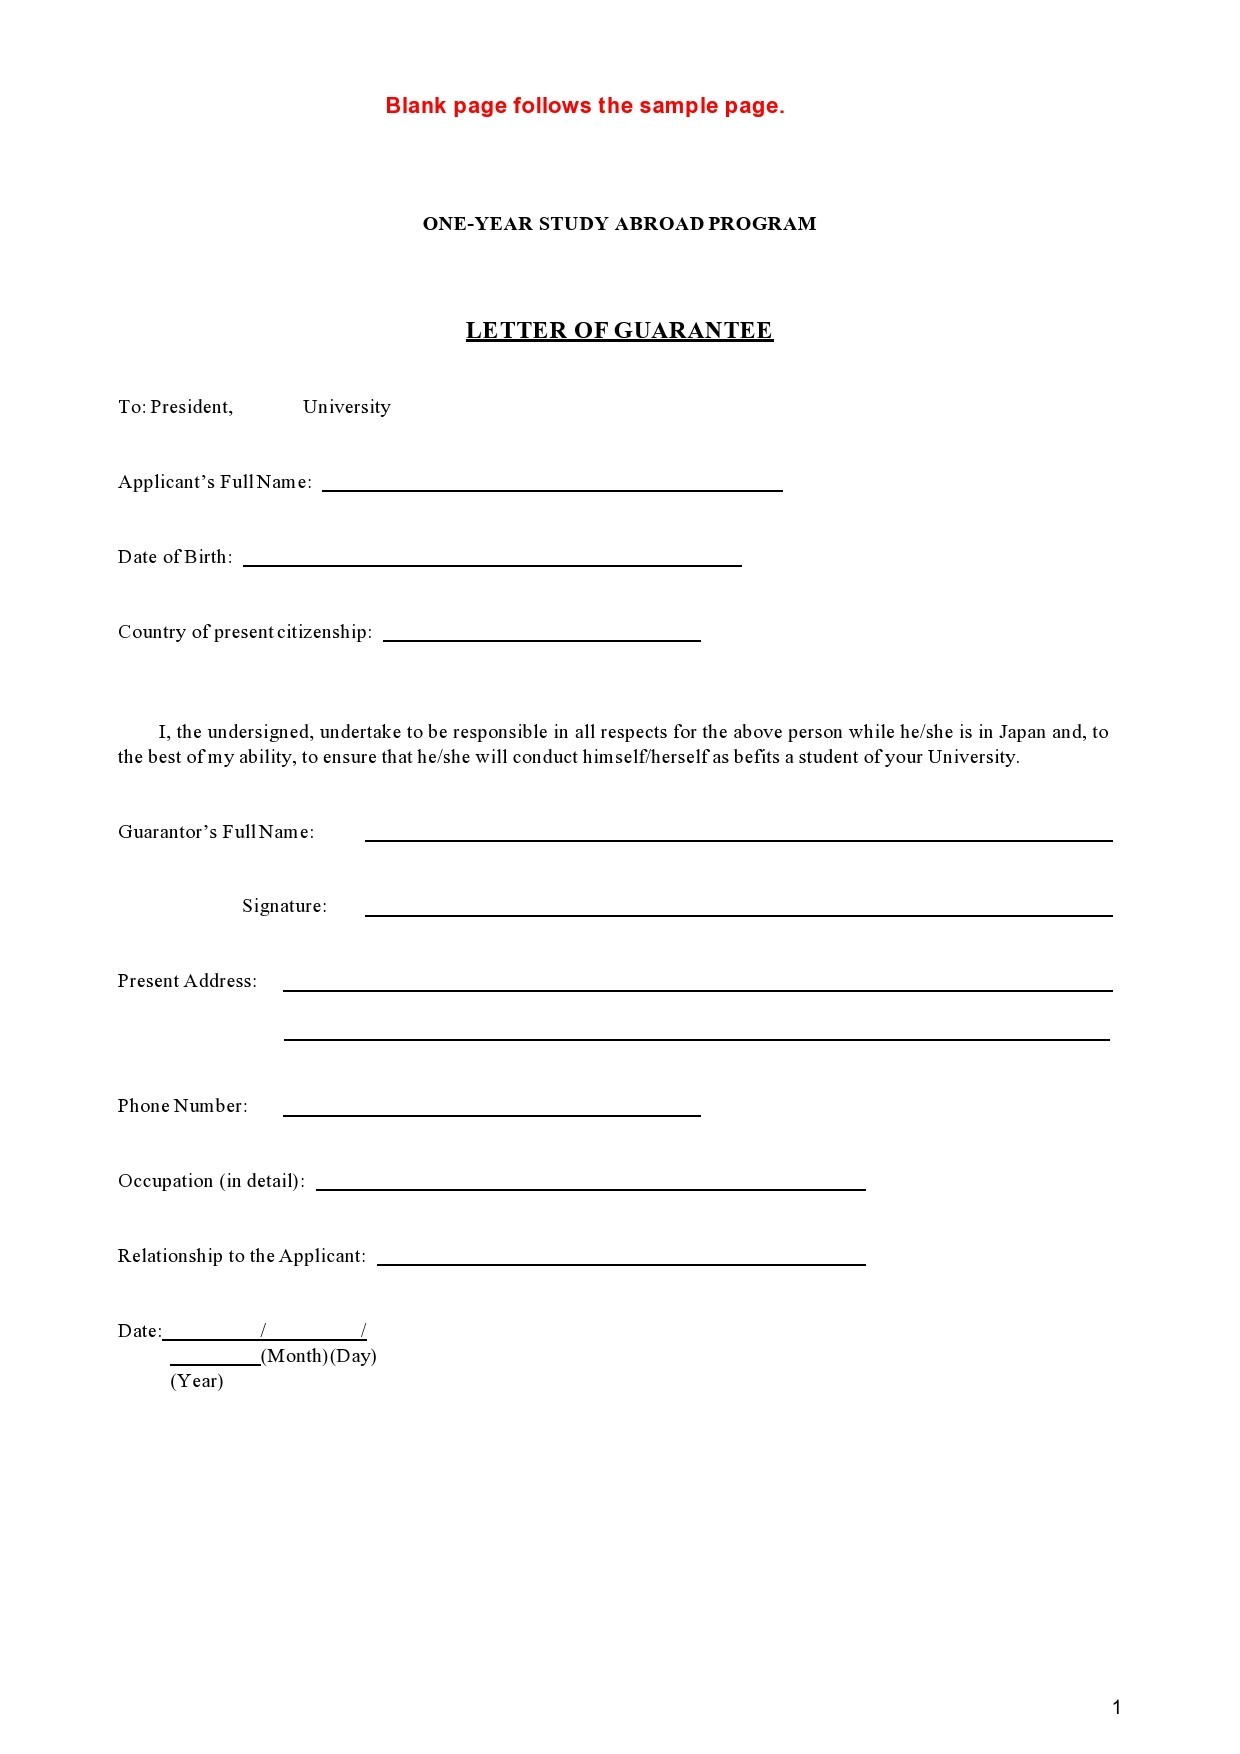 Free letter of guarantee 01